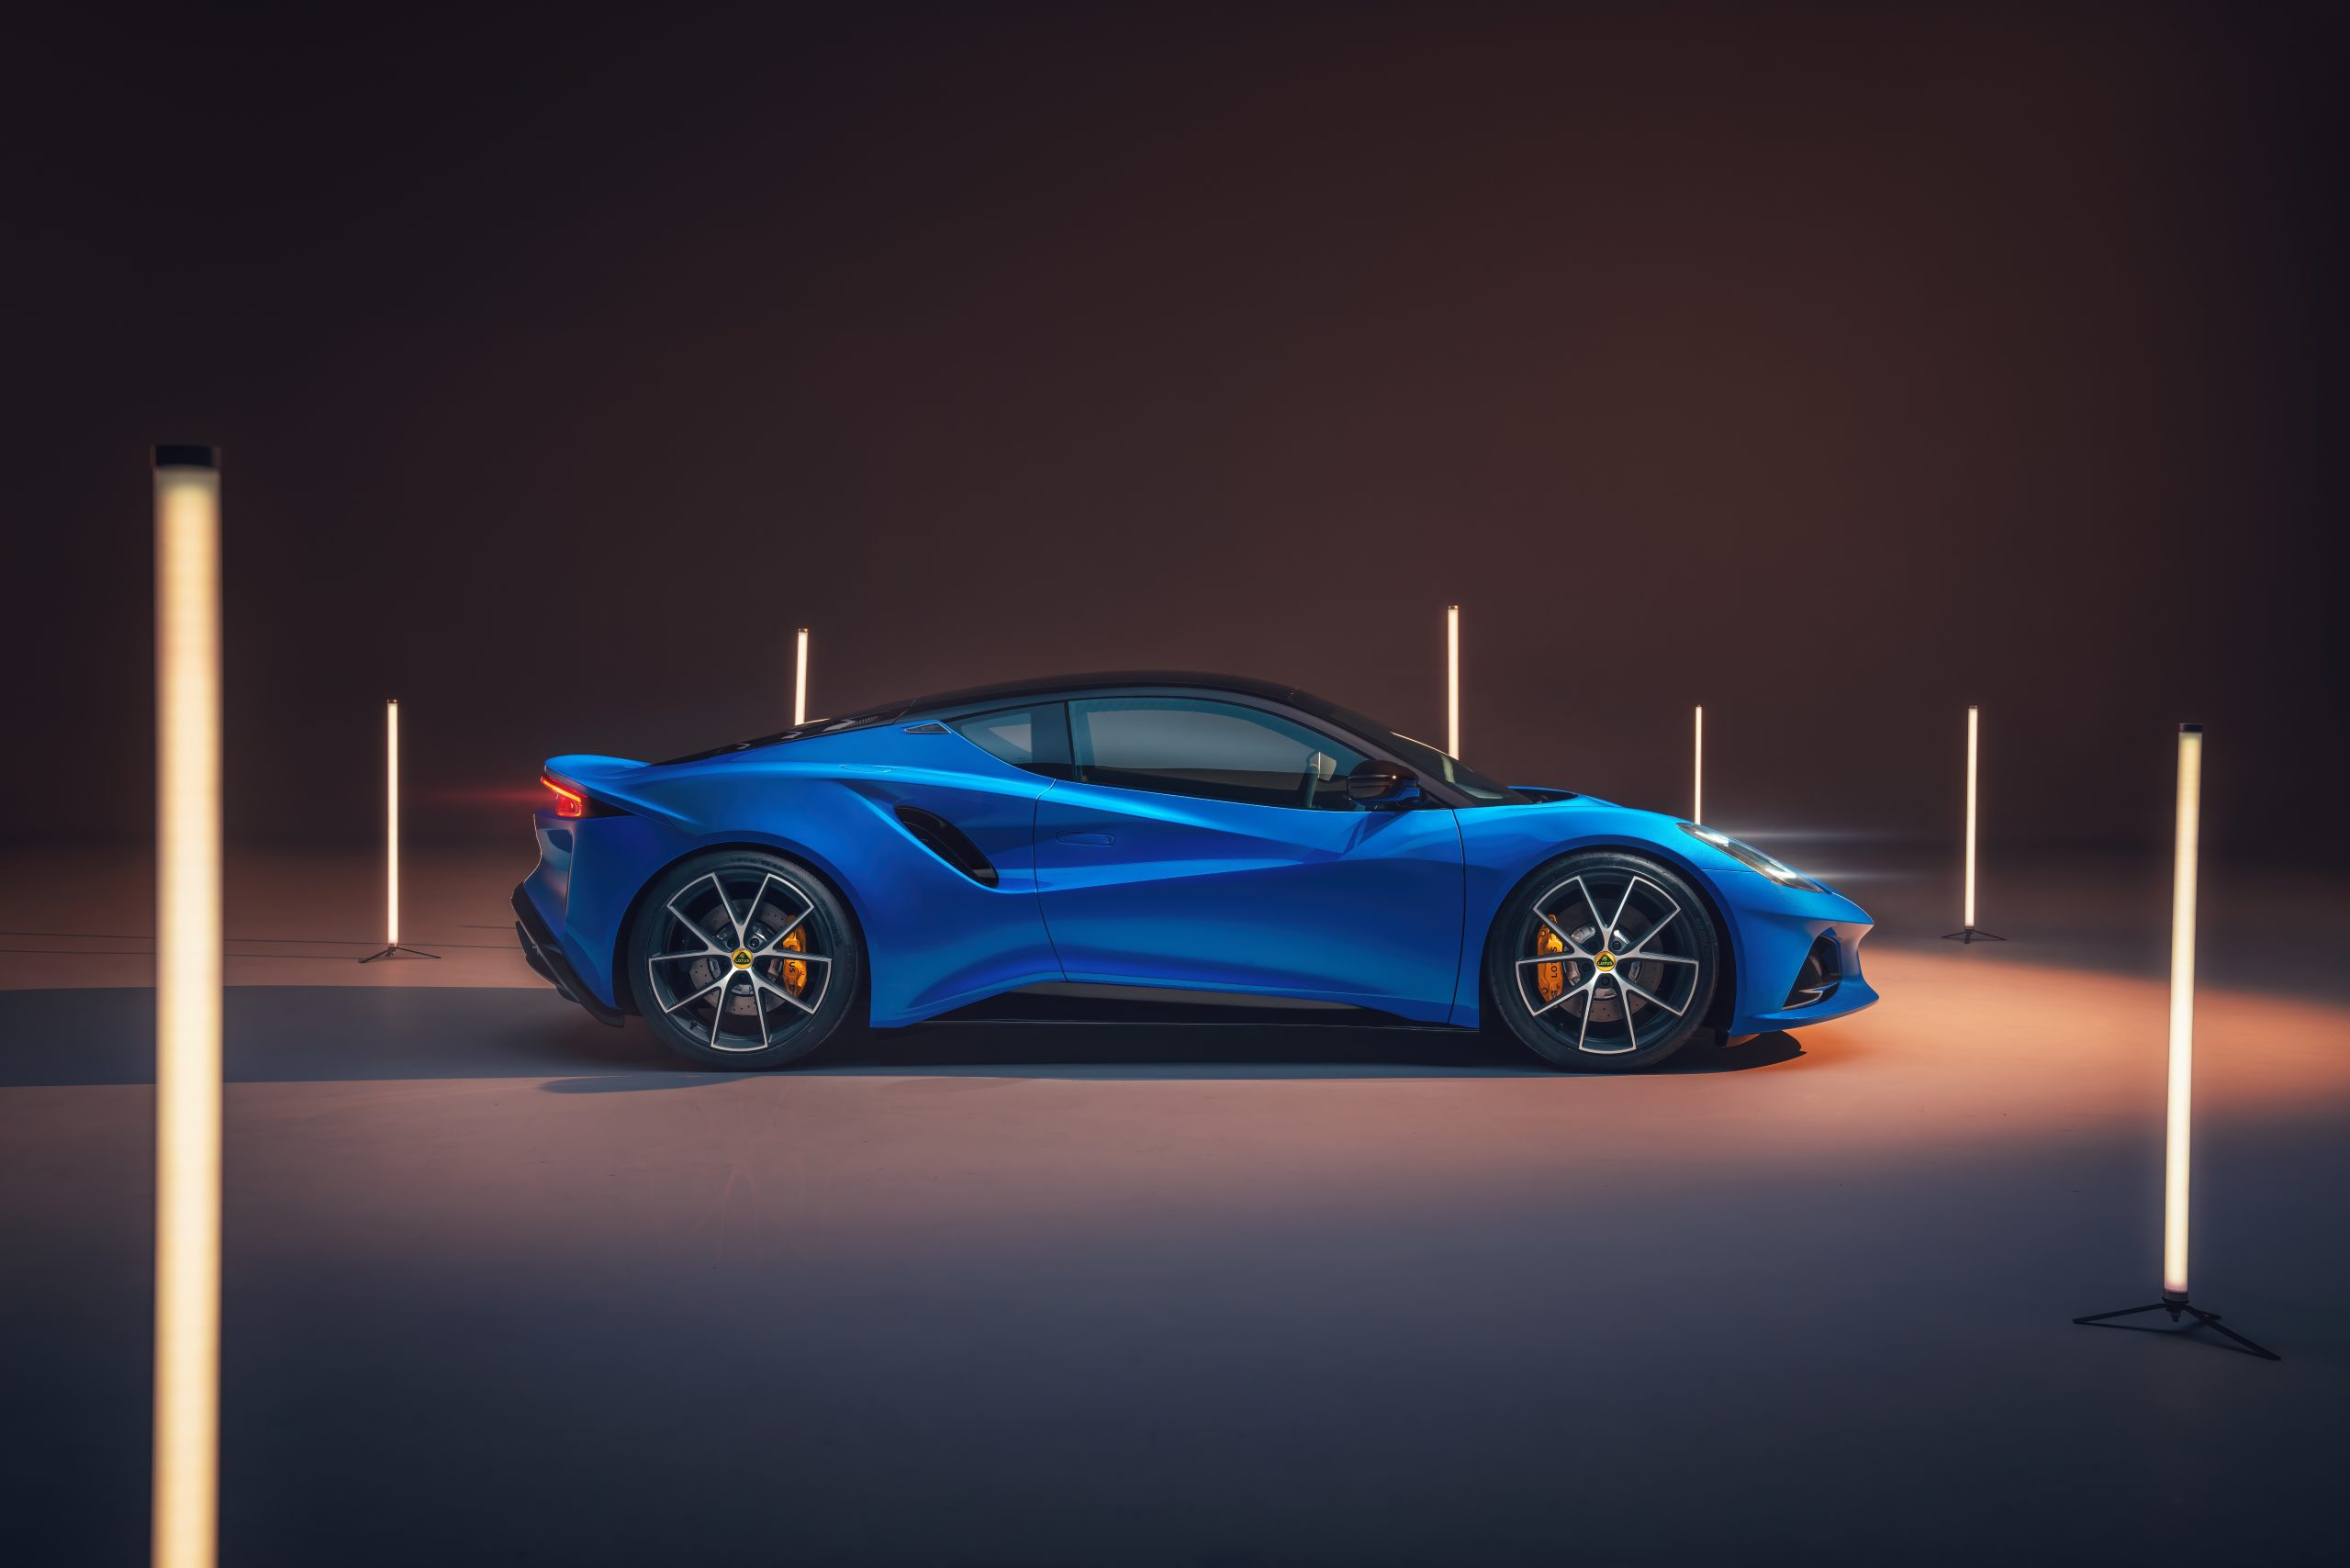 First Look At The Lotus Emira: An All-New Sports Car